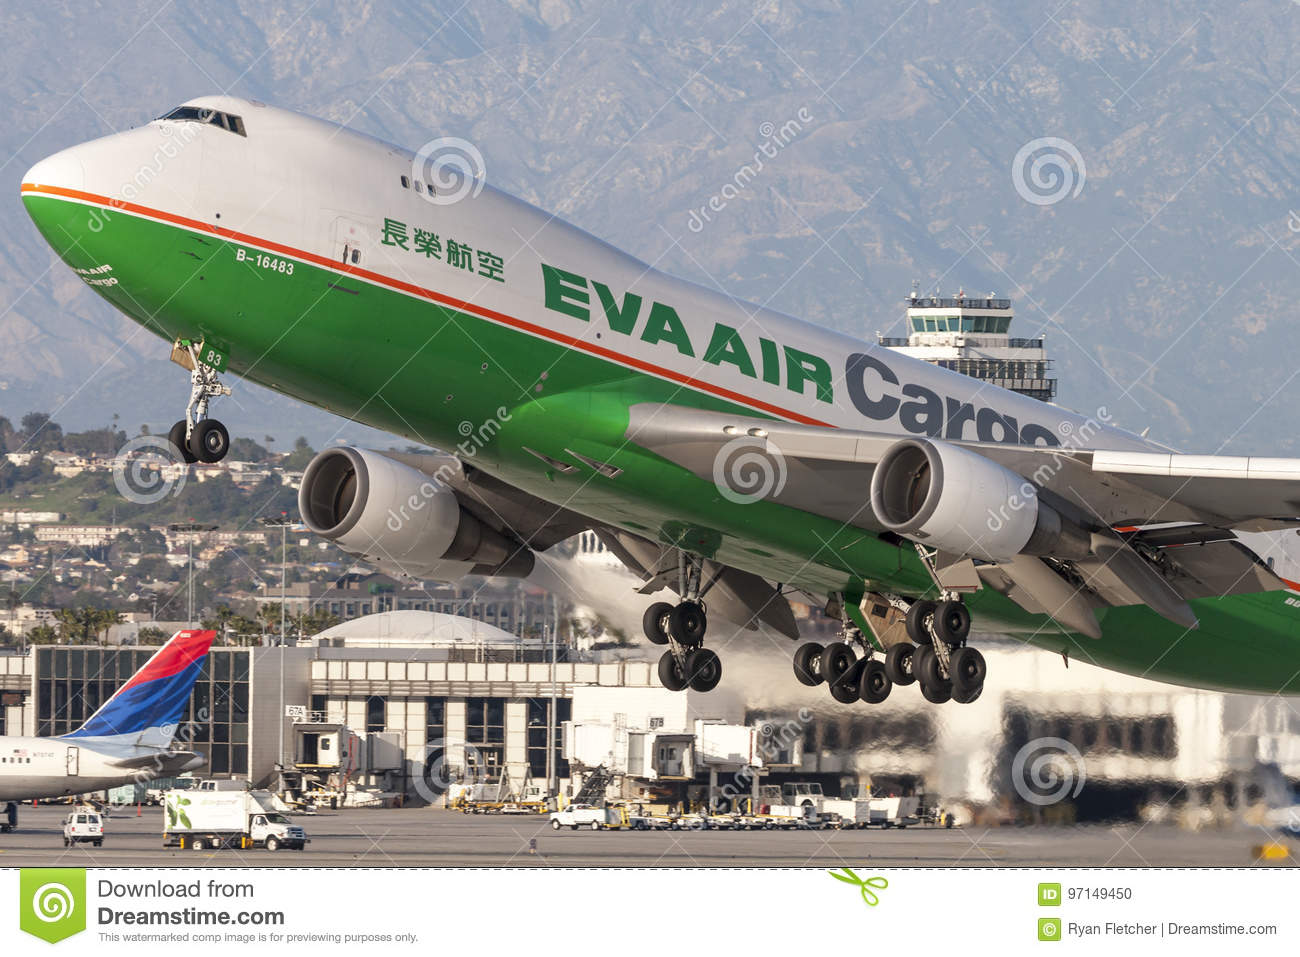 EVA Airways EVA Air Cargo Boeing 747 cargo aircraft taking off from Los Angeles International Airport.